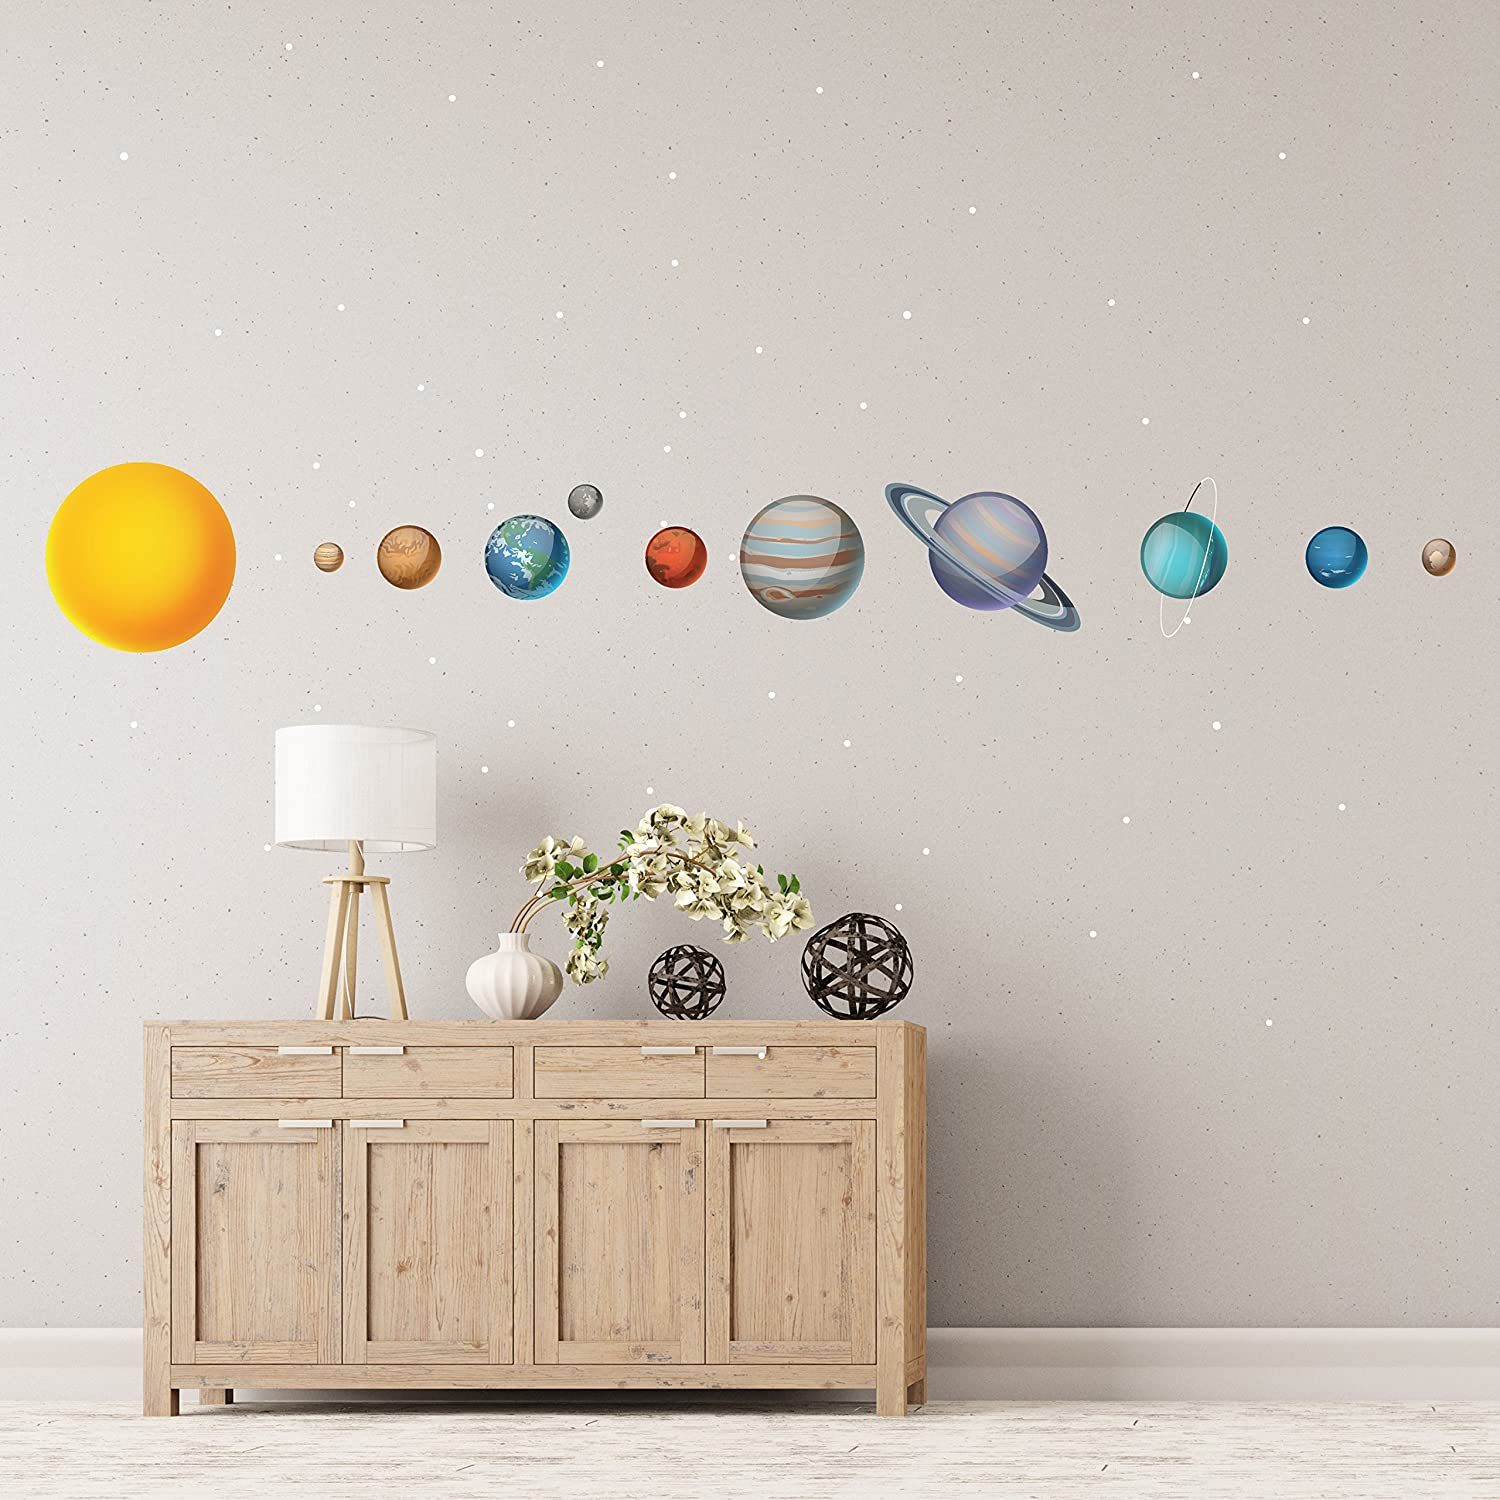 Amazon go go dragon large solar system of planets wall amazon go go dragon large solar system of planets wall decals wdset10019 50 home kitchen amipublicfo Gallery